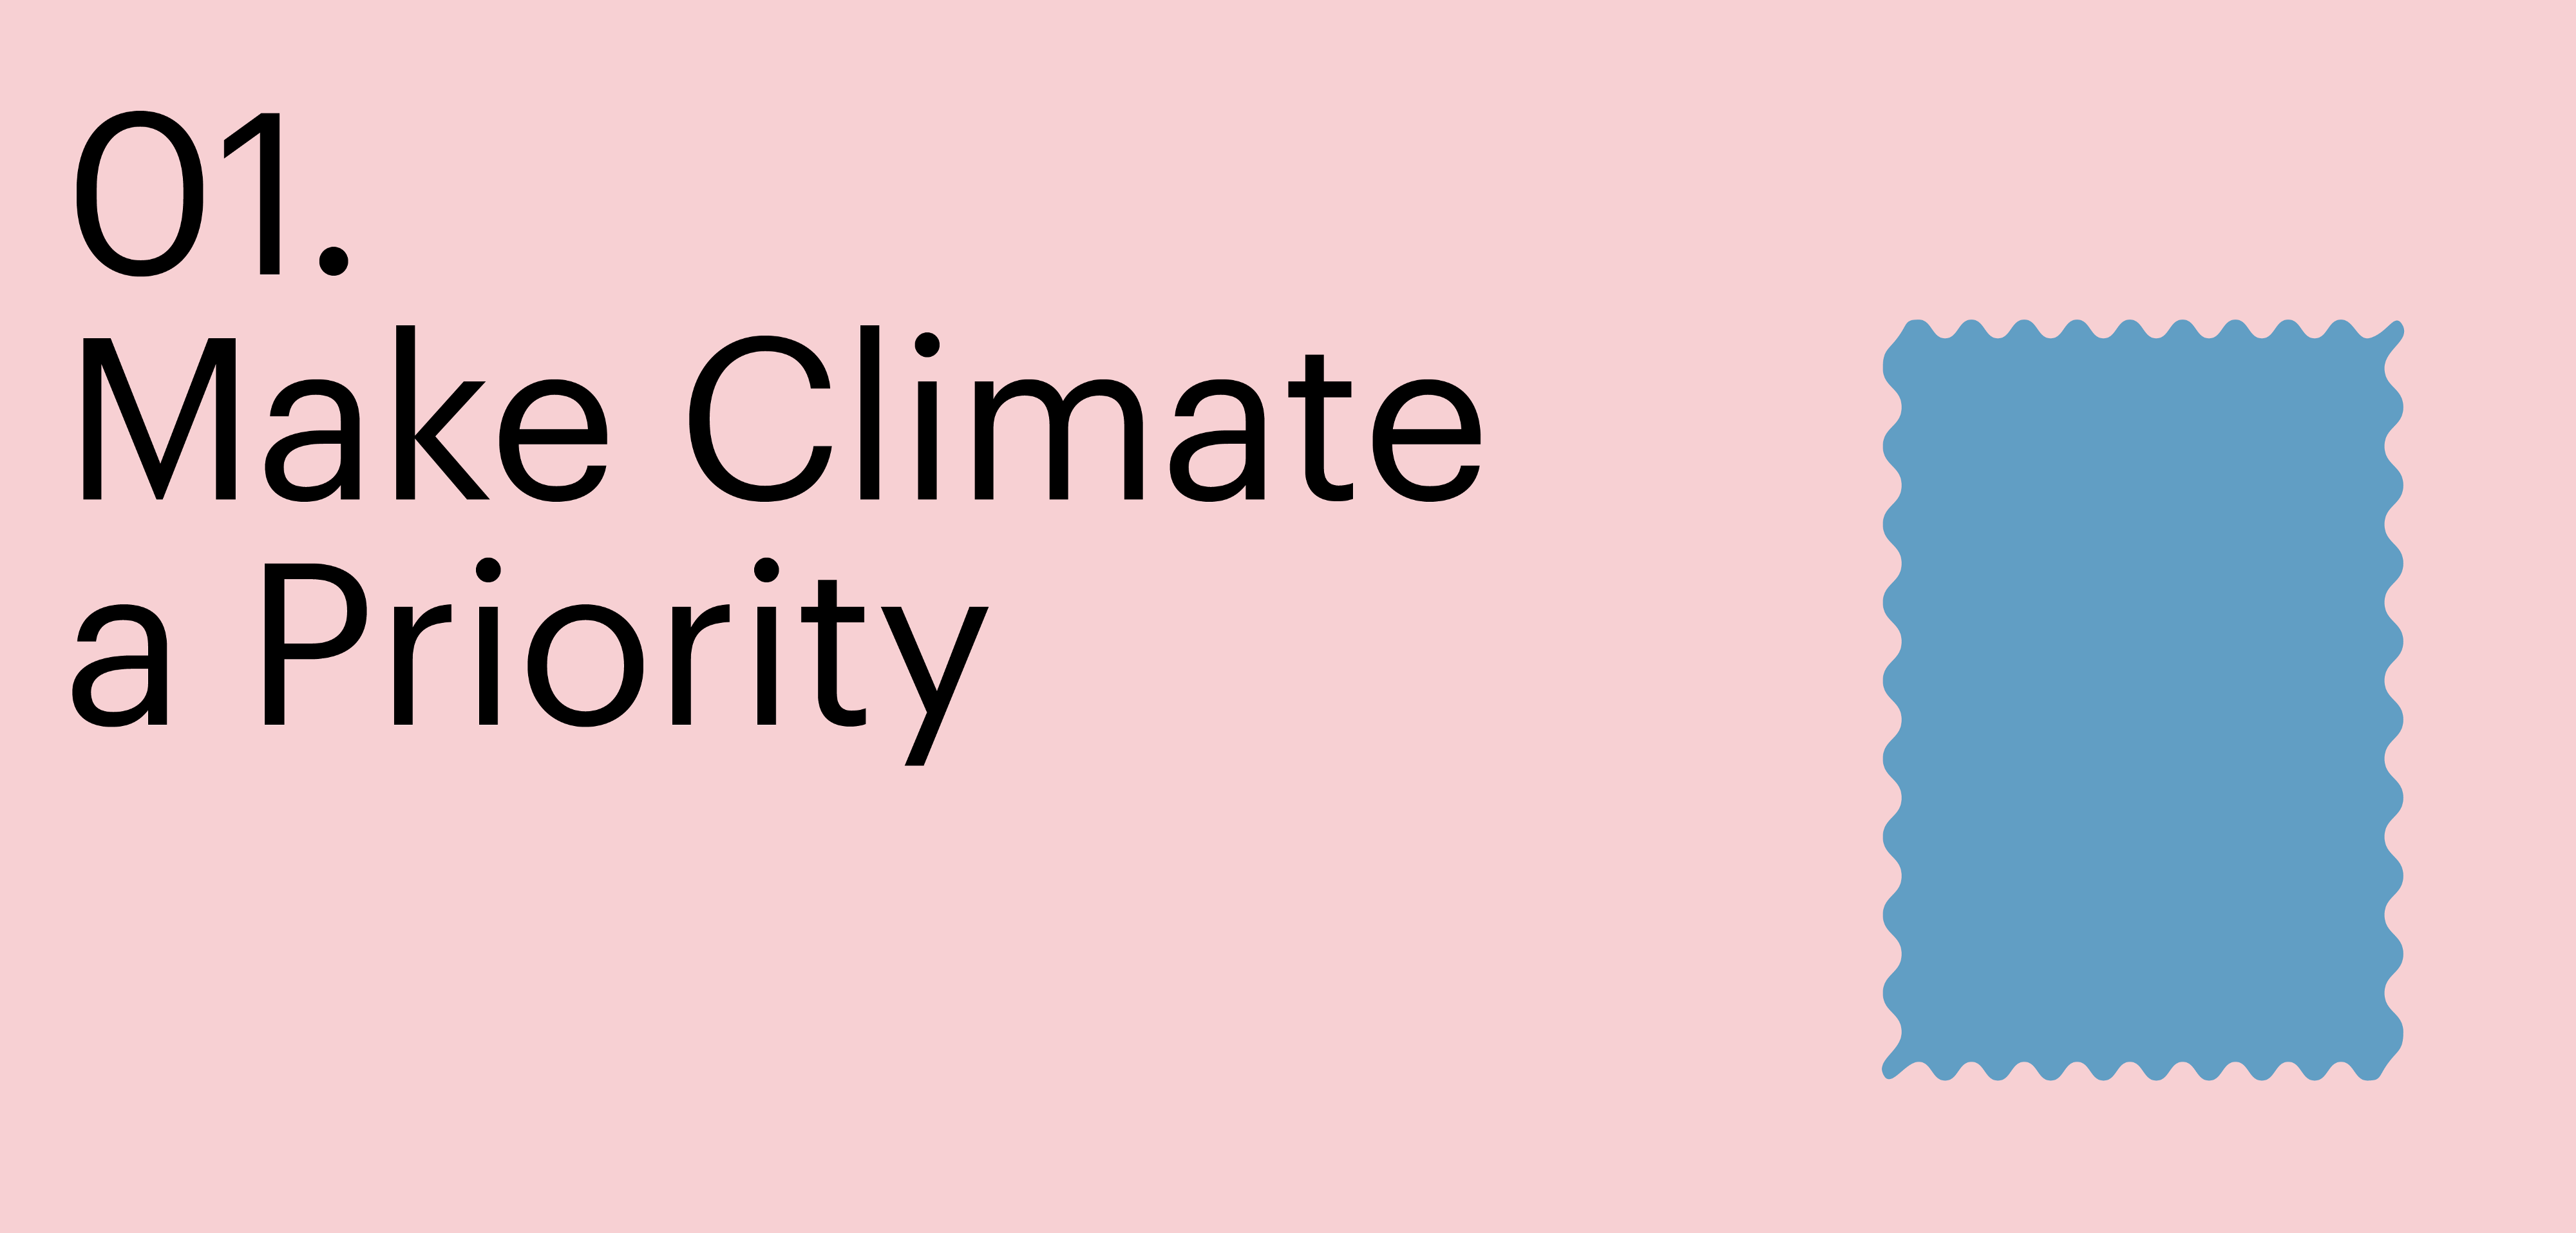 Principle number one. Make Climate a Priority